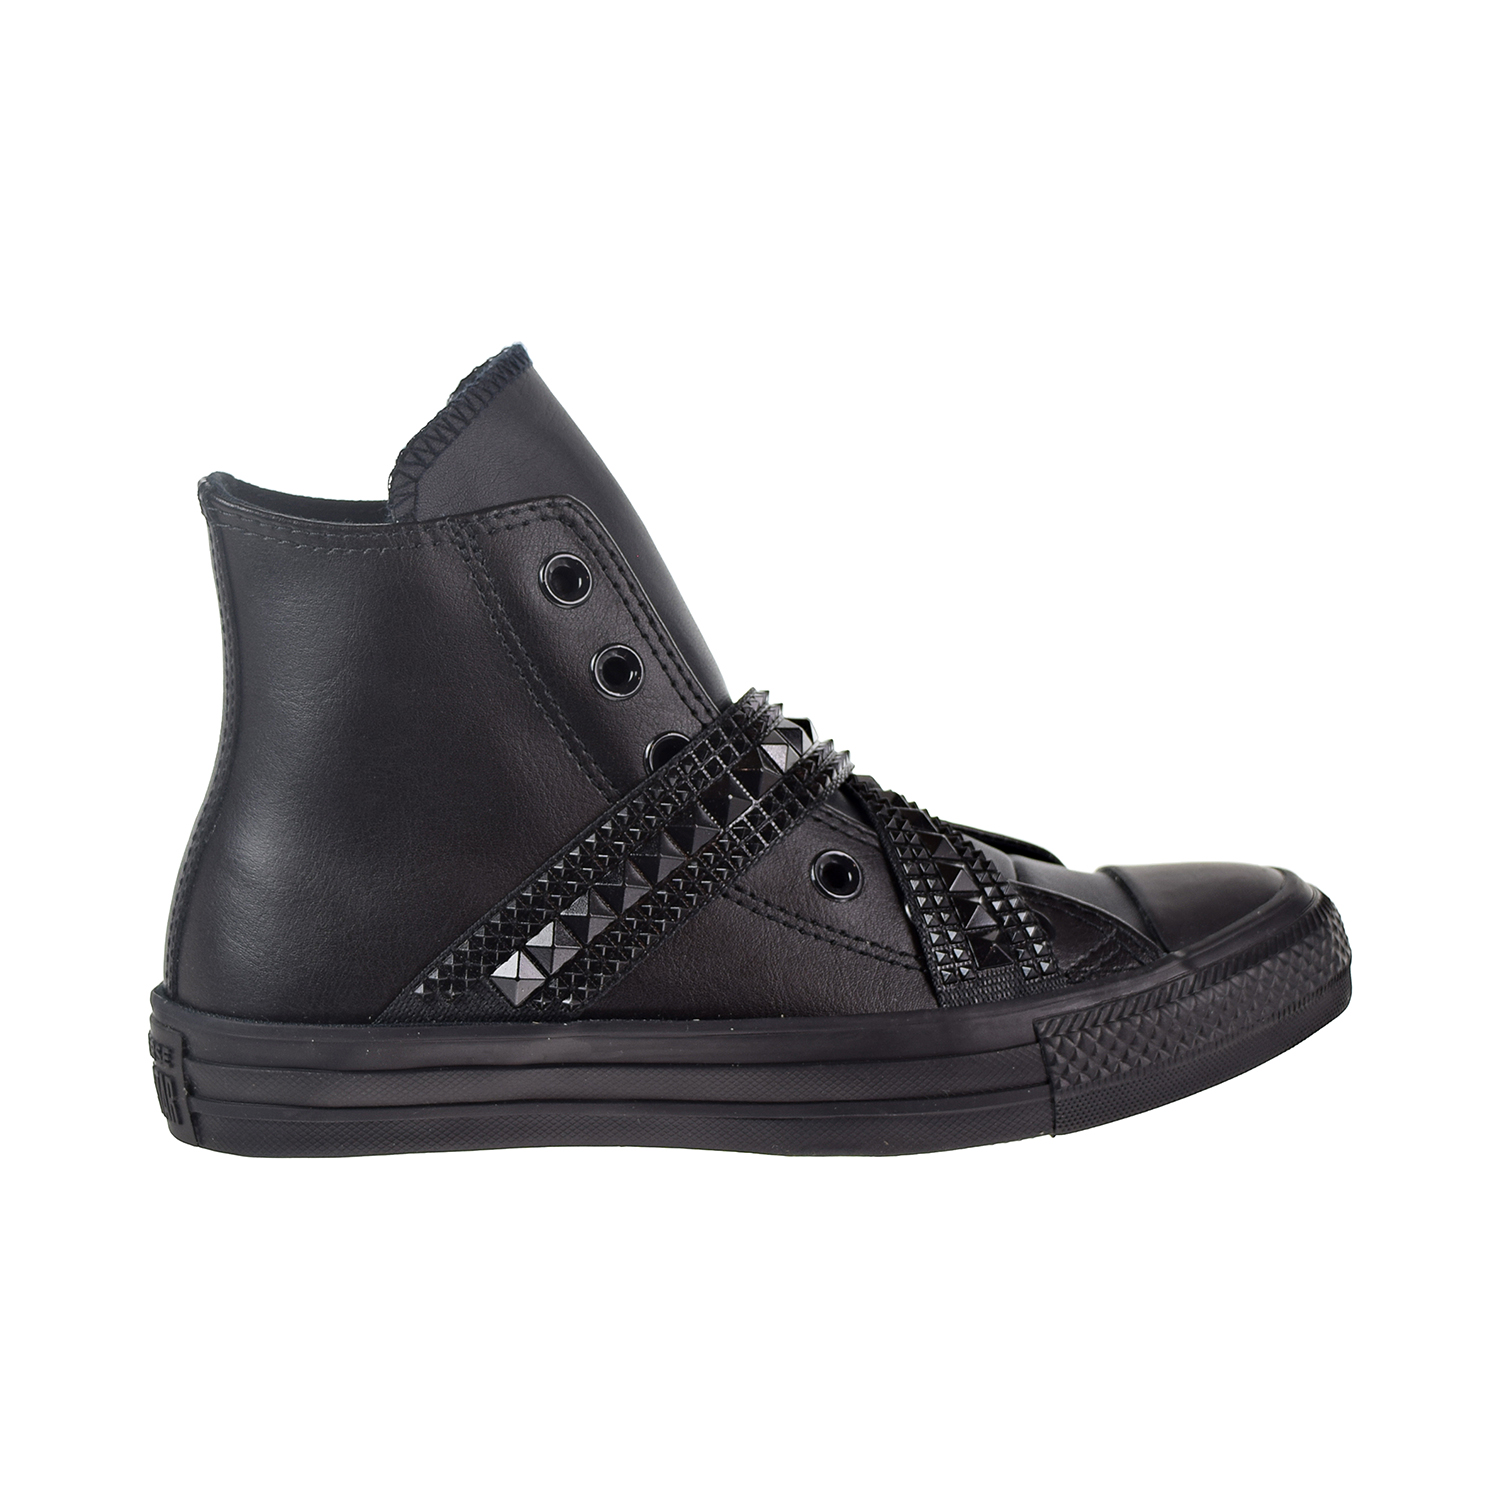 6b186dd384c7 Details about Converse Chuck Taylor All Star Punk Strap Hi Women s Shoes  Black 562430C